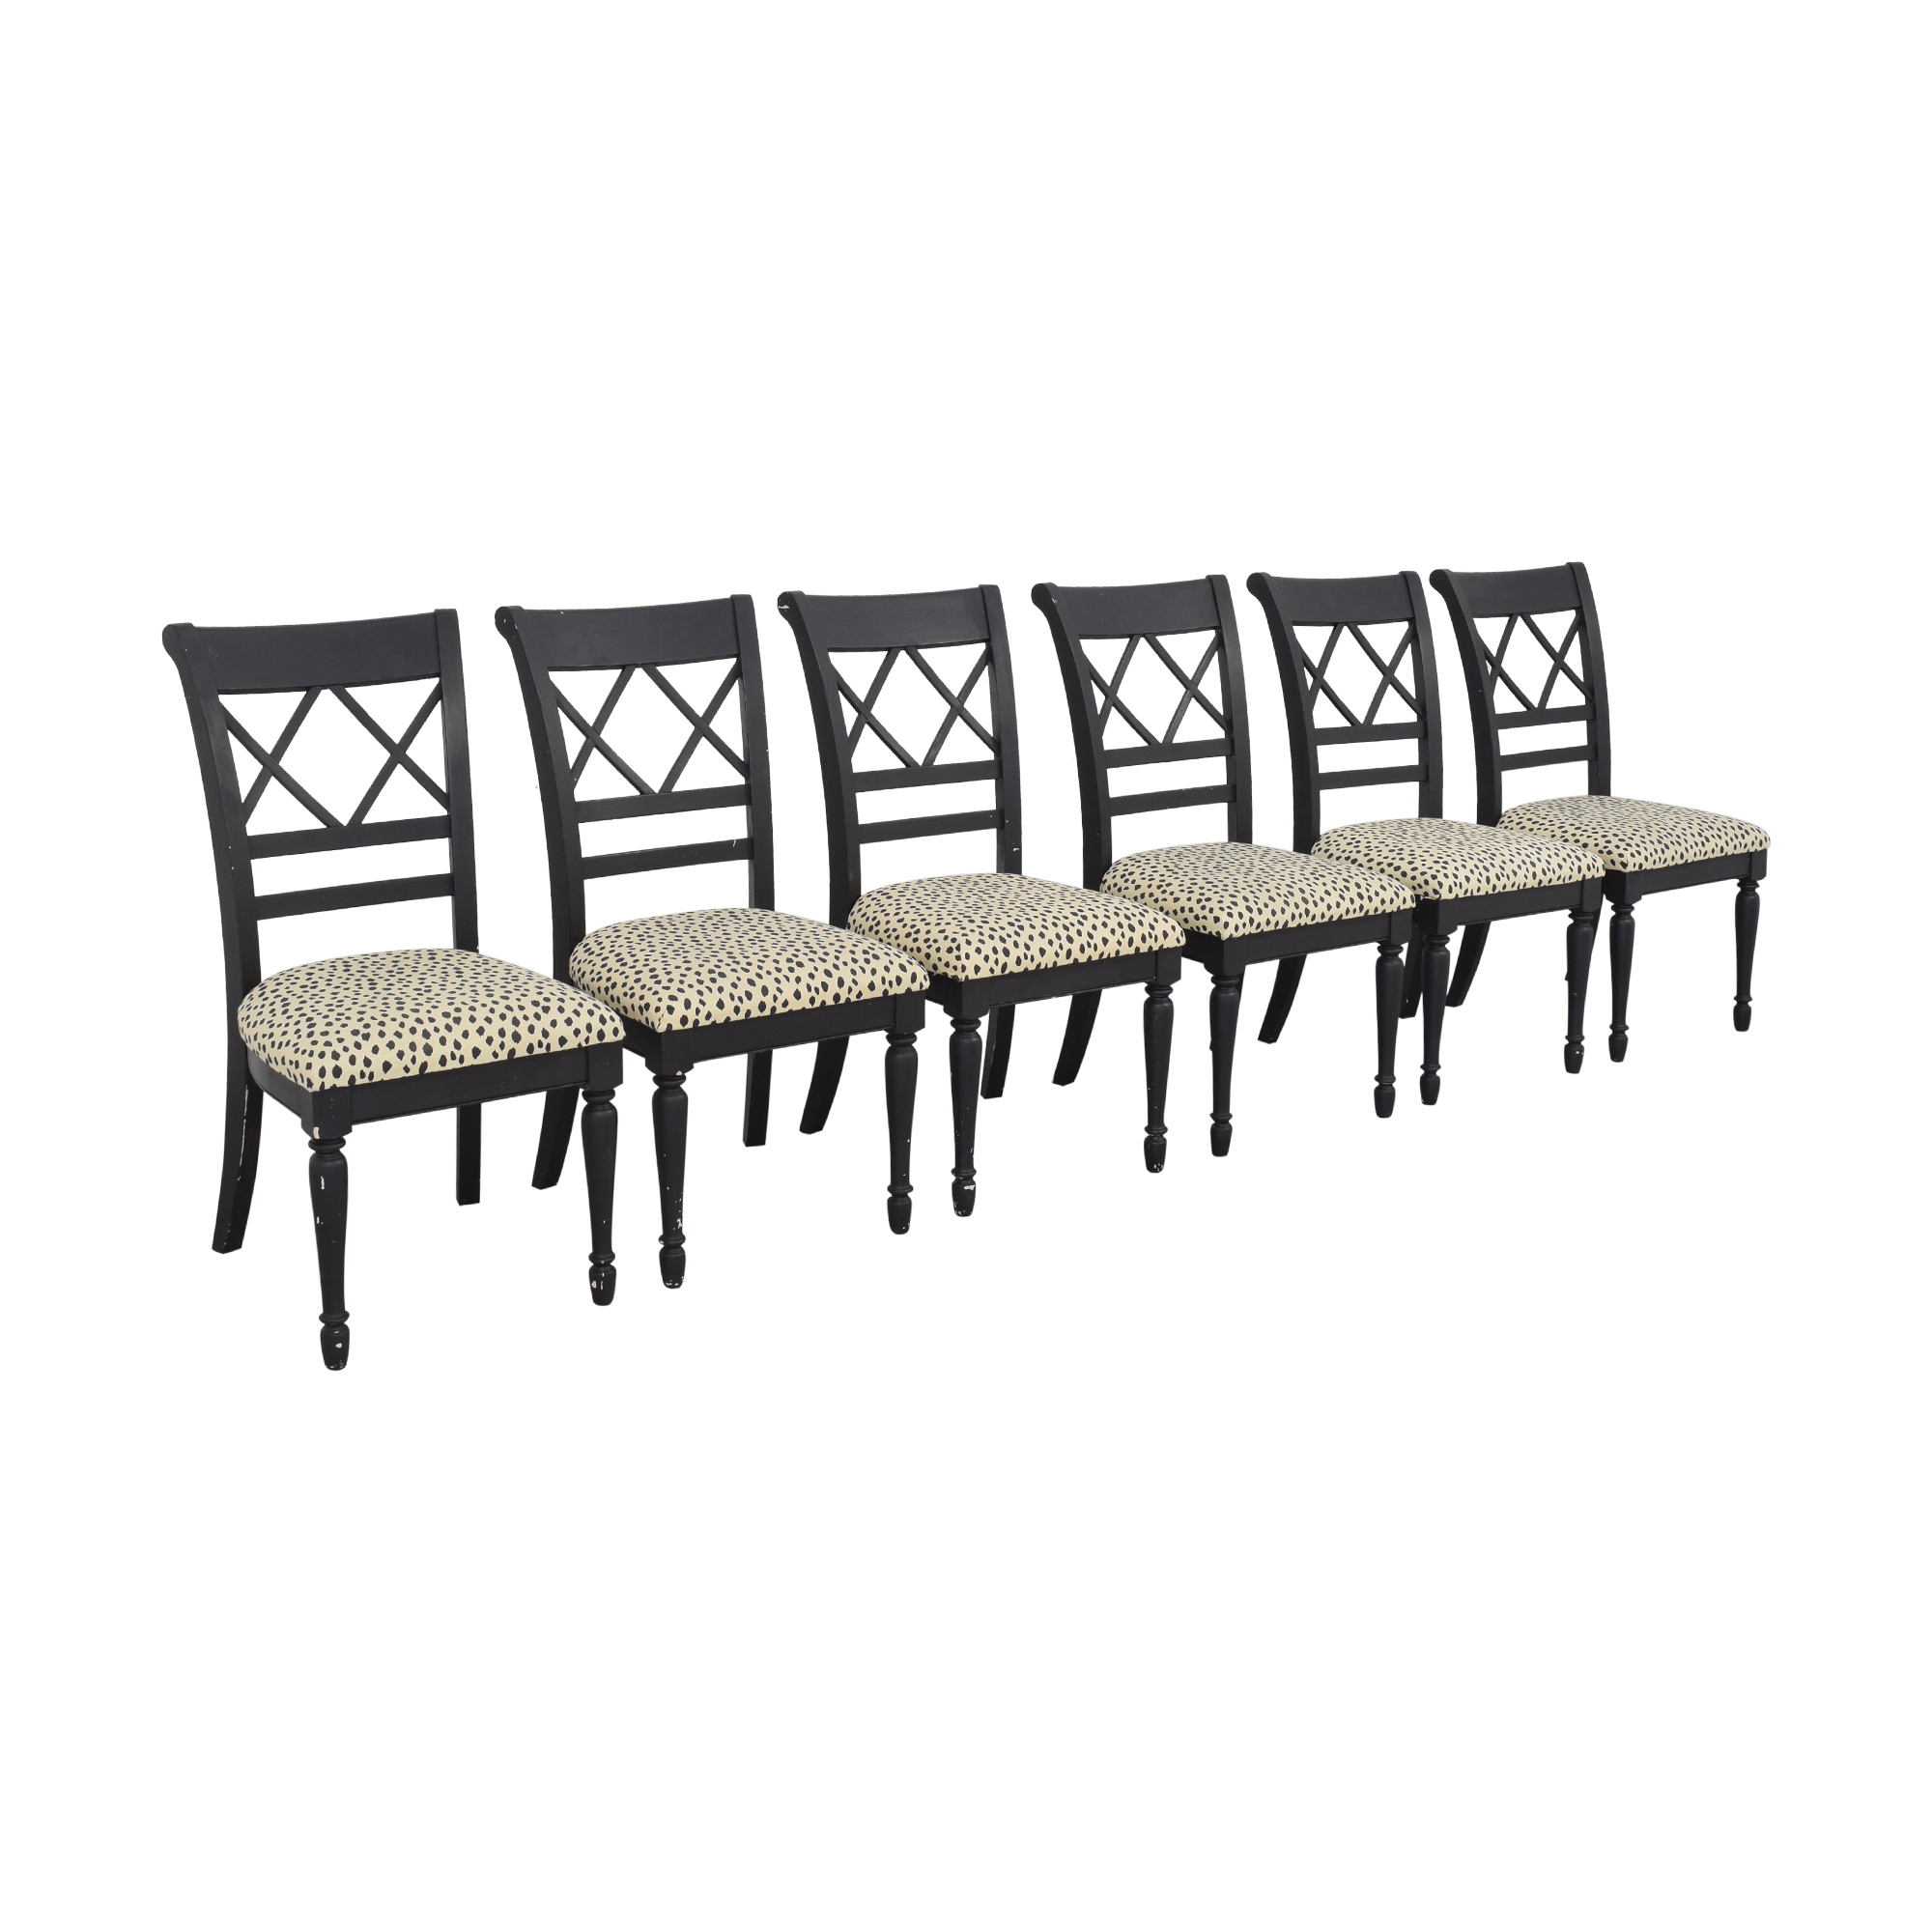 buy Cresent Fine Furniture Dining Chairs Cresent Furniture Chairs